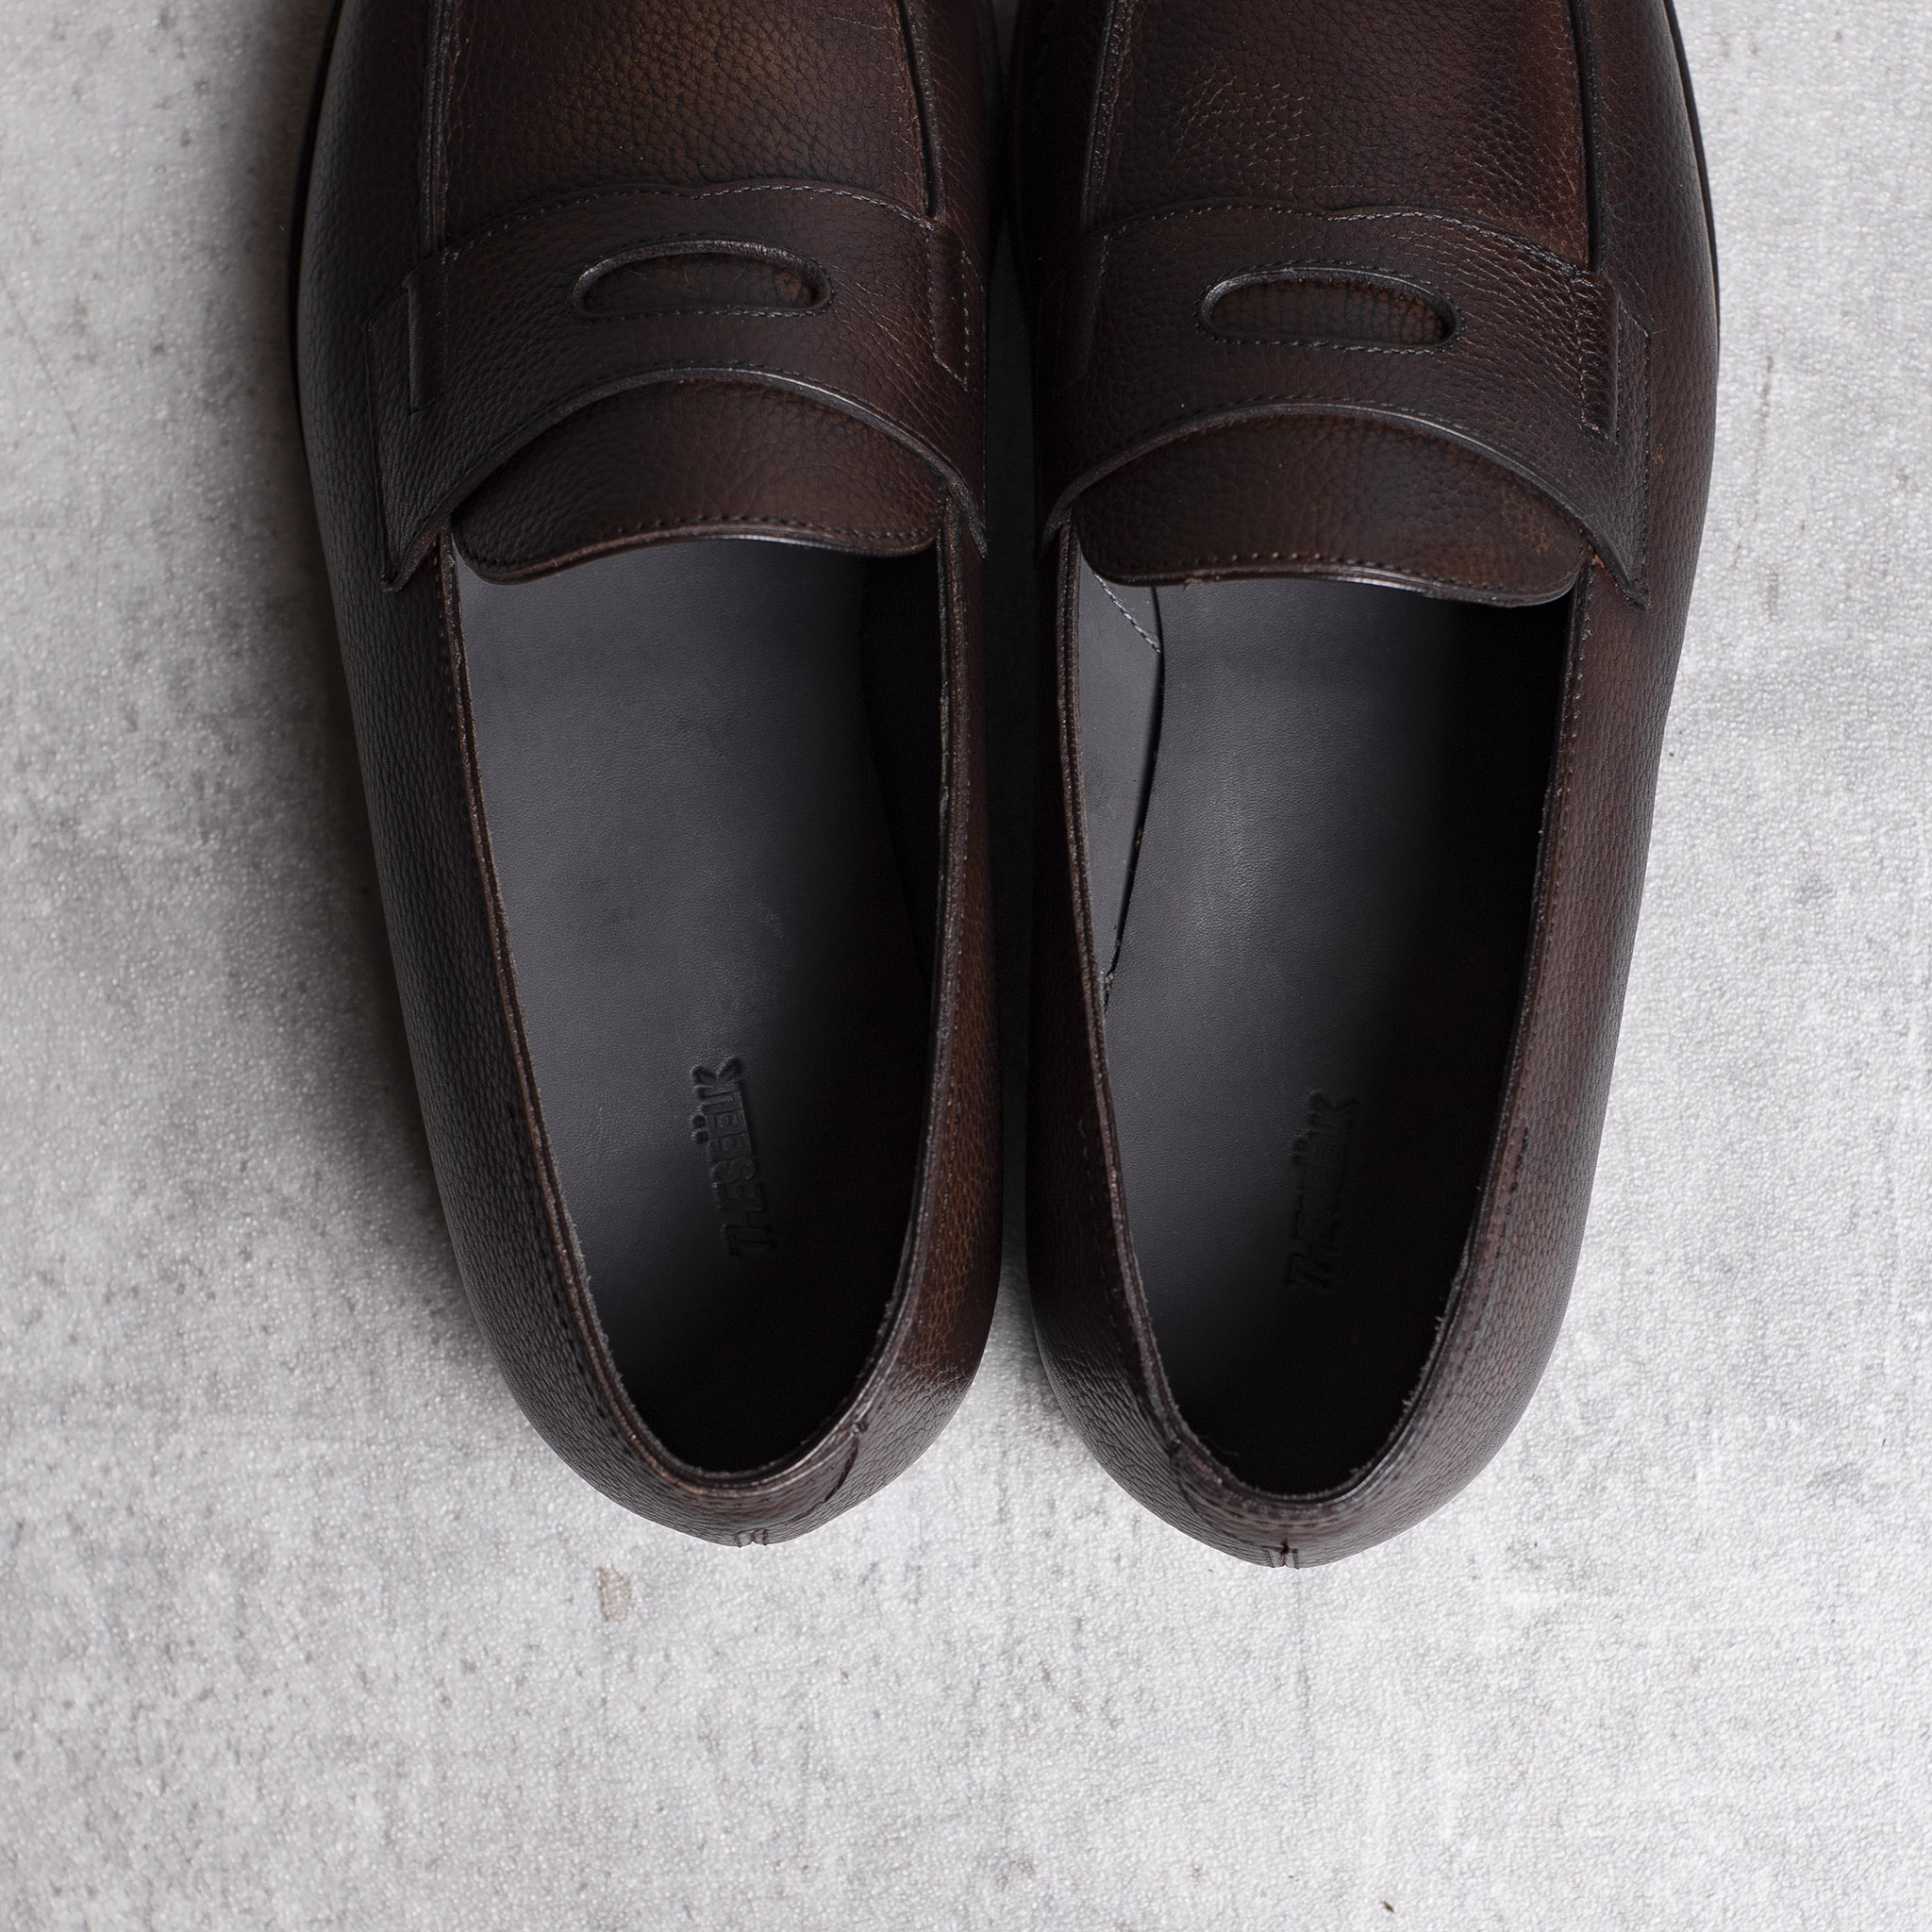 LOAFERS · 0647 Grain leather Toffee 5